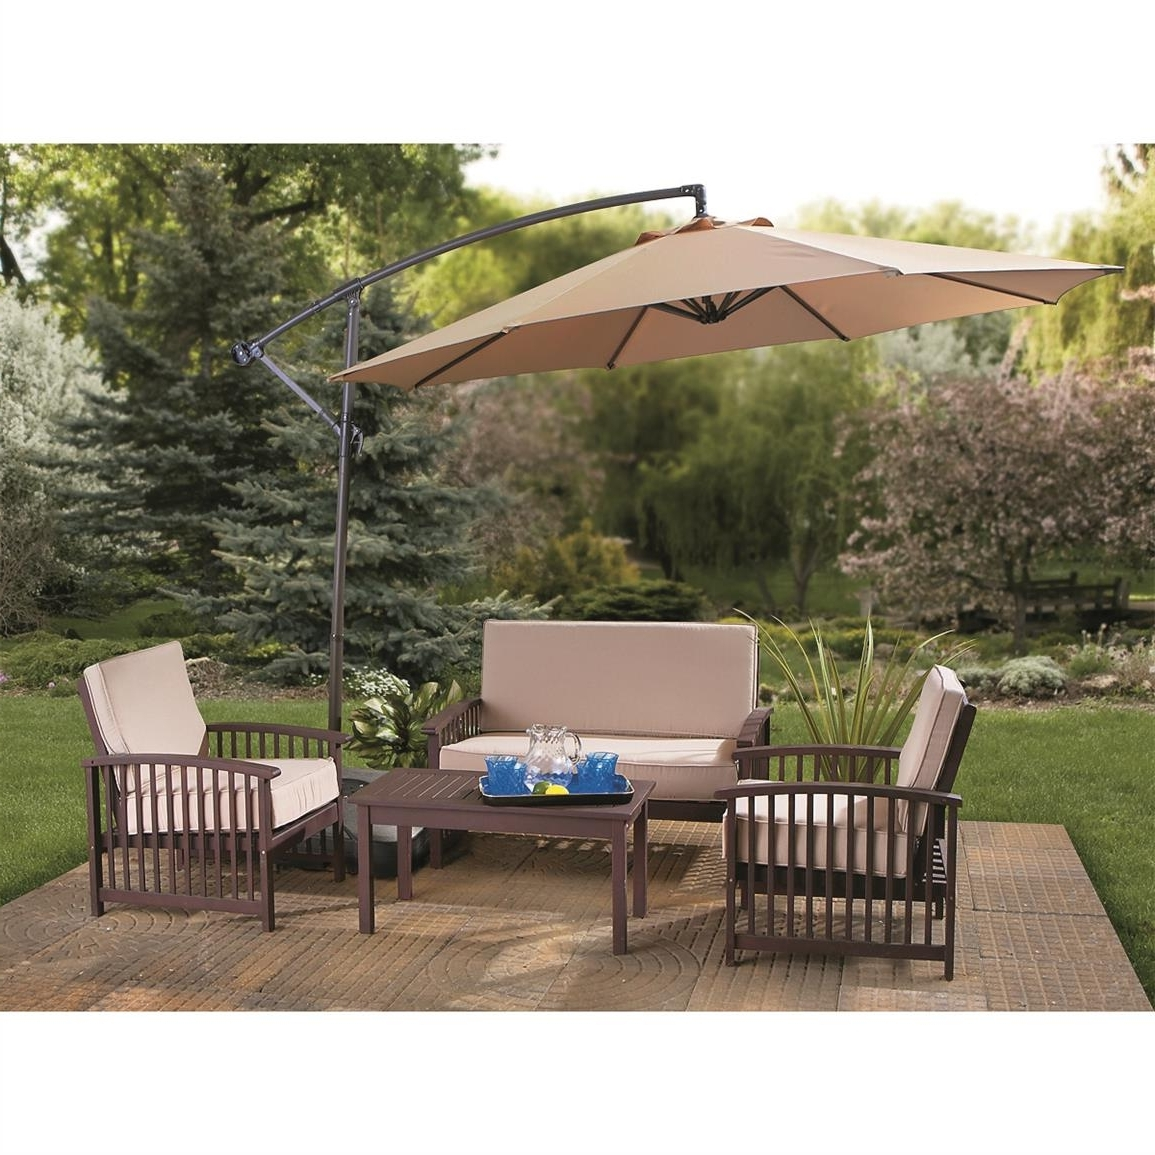 Outdoor: Patio Cantilever Umbrella Enchanting Outdoor Furniture A Throughout Most Recent Patio Furniture Sets With Umbrellas (View 9 of 20)